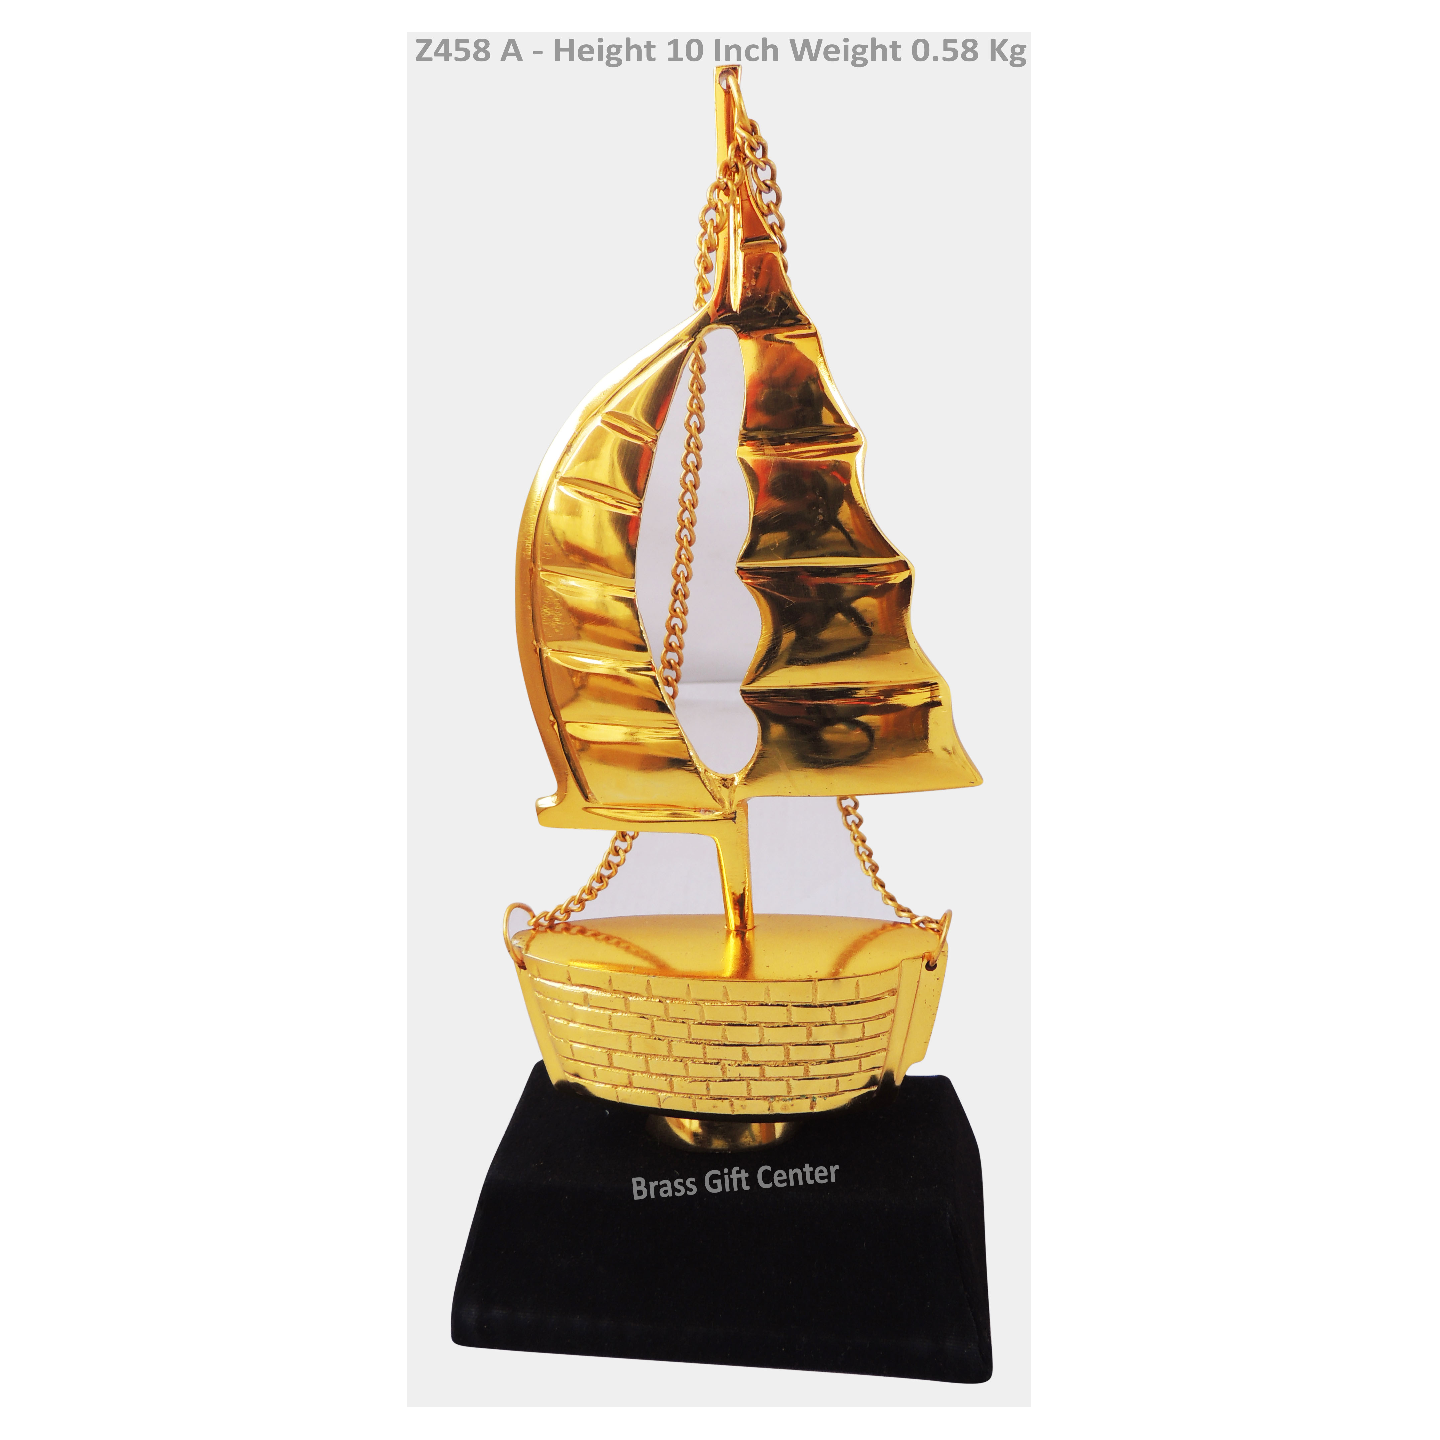 Showpiece Ship With Wooden Base - 10 Inch (Z458 A)